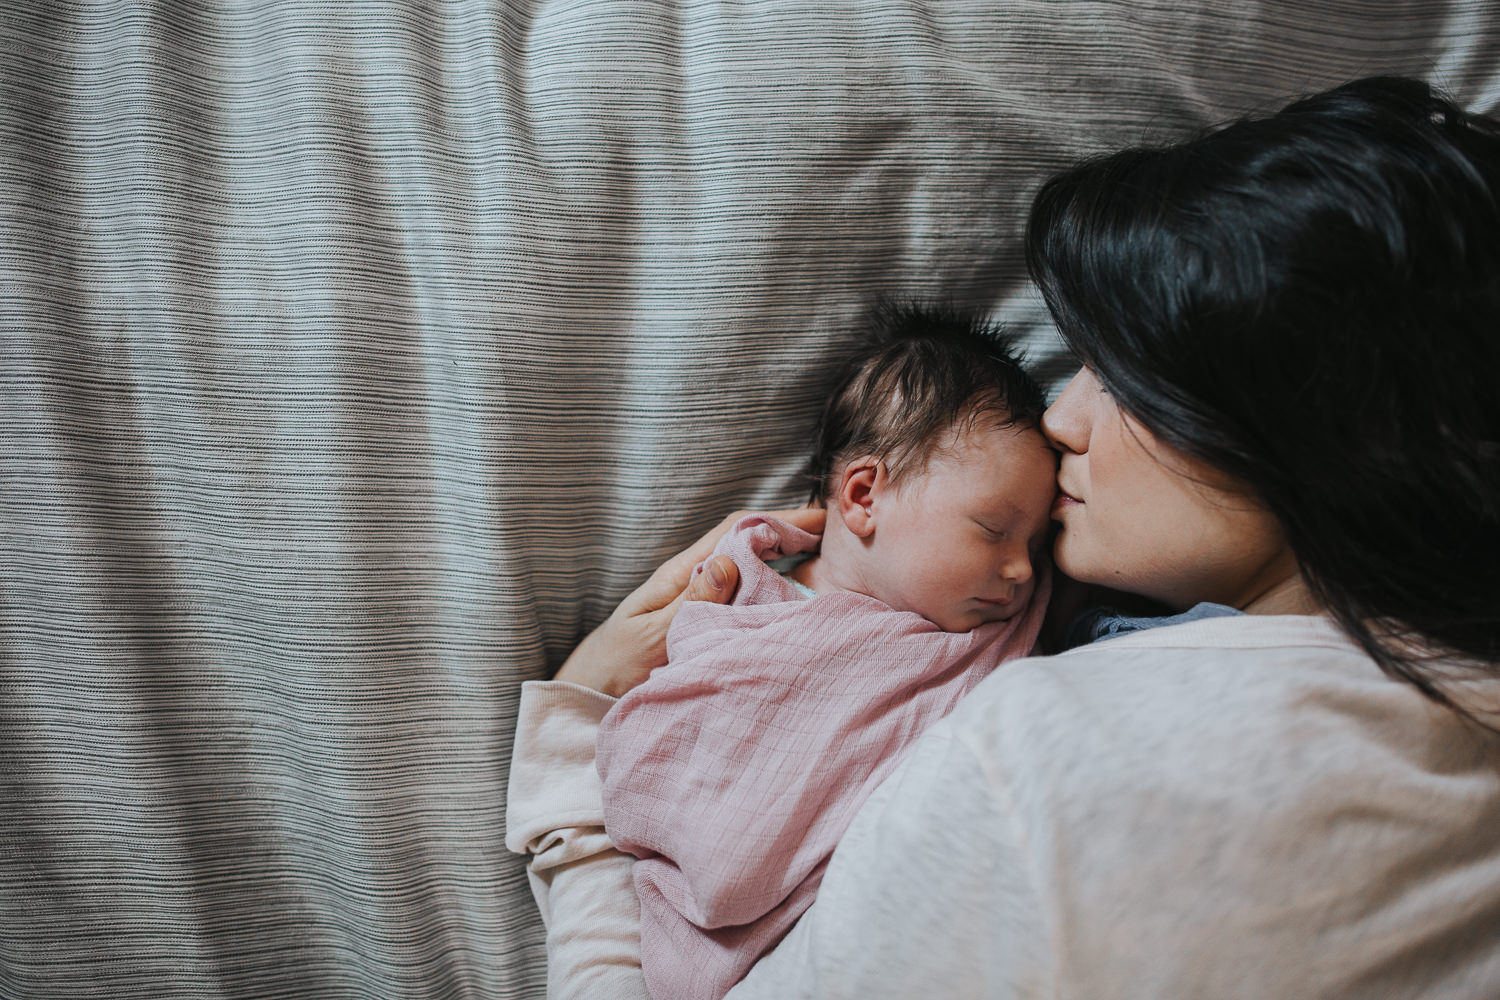 new mom snuggled face to face with 2 week old baby daughter - Barrie lifestyle photography